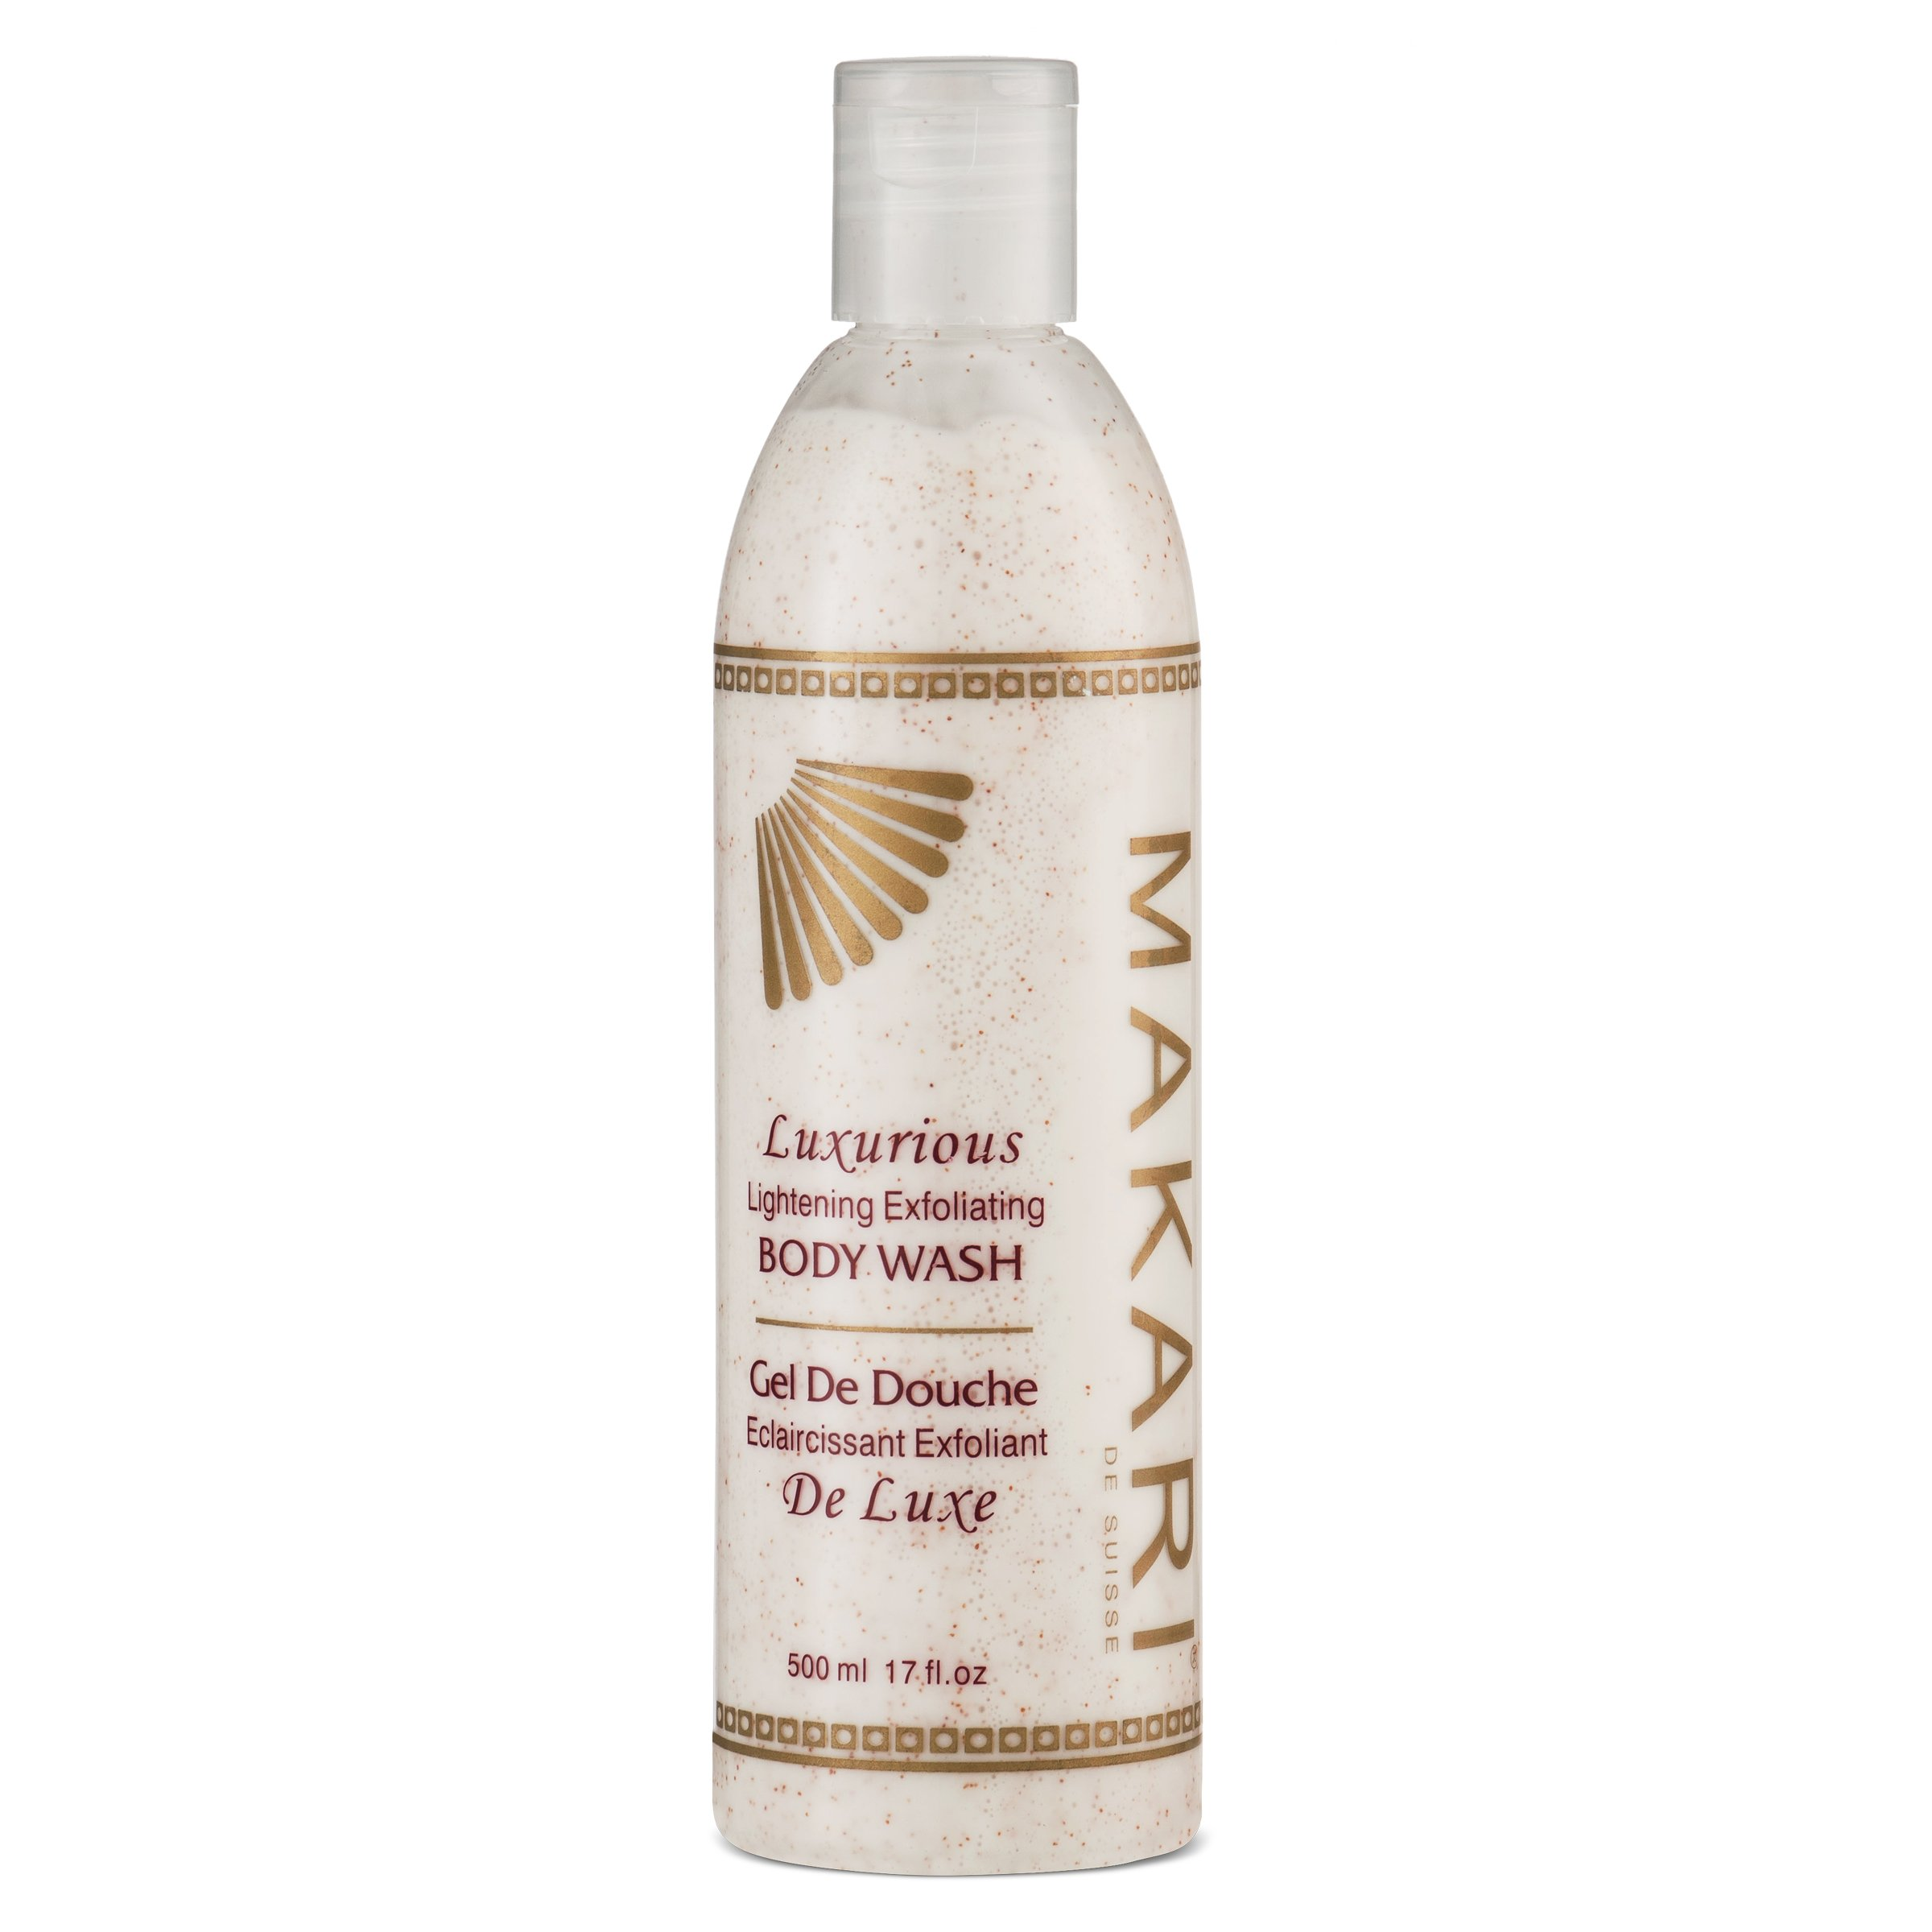 Makari Classic Luxurious Lightening Exfoliating Body Wash 17 fl.oz – Face & Body Cleanser With Mulberry Root Extract & Exfoliating Micro Crystals – Whitening Treatment for Dark Spots & Acne Scars